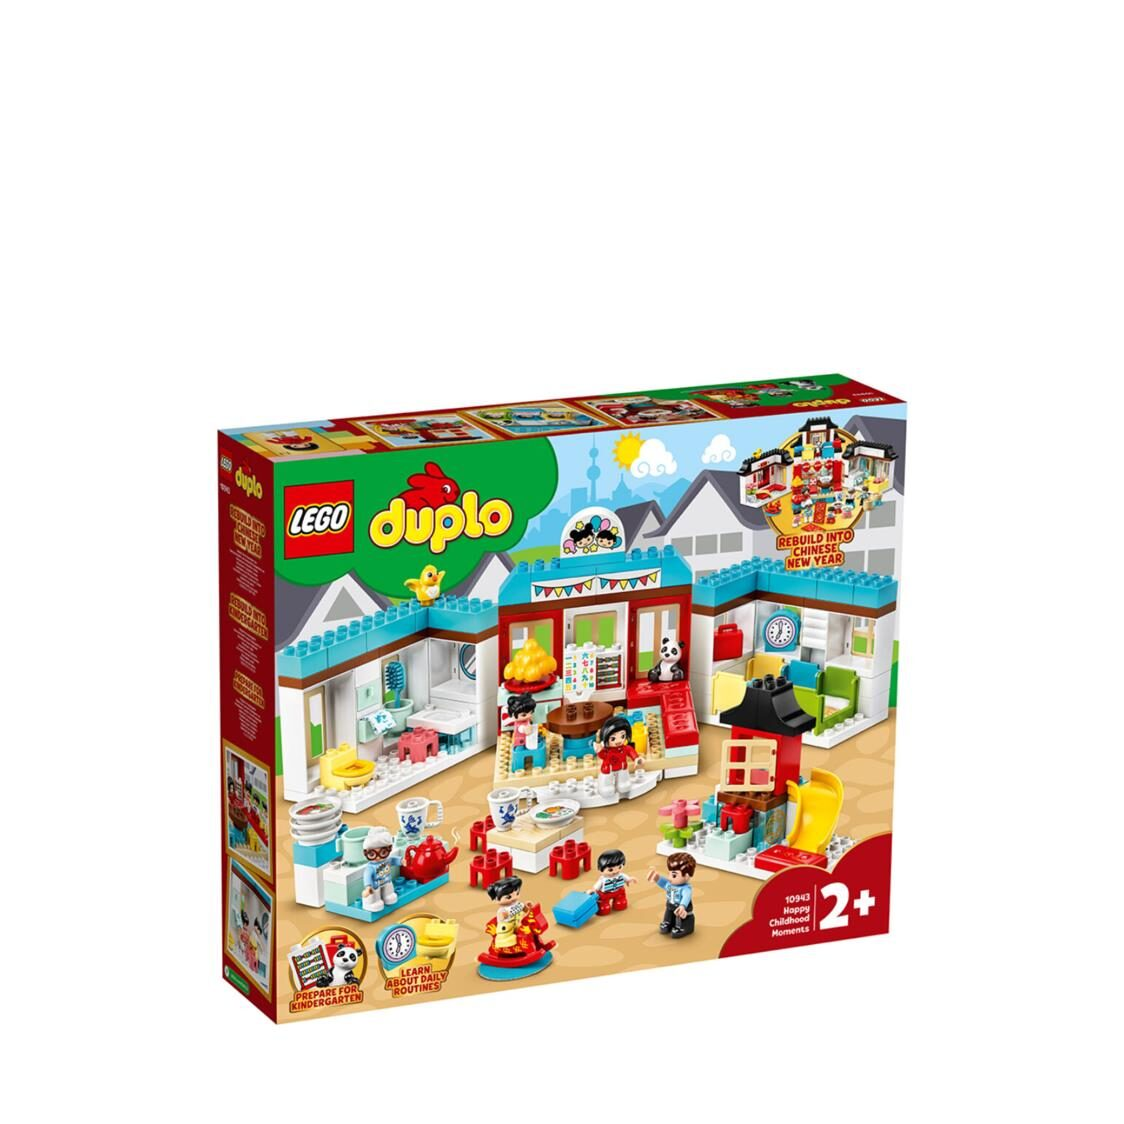 LEGO DUPLO Town - Happy Childhood Moments 10943